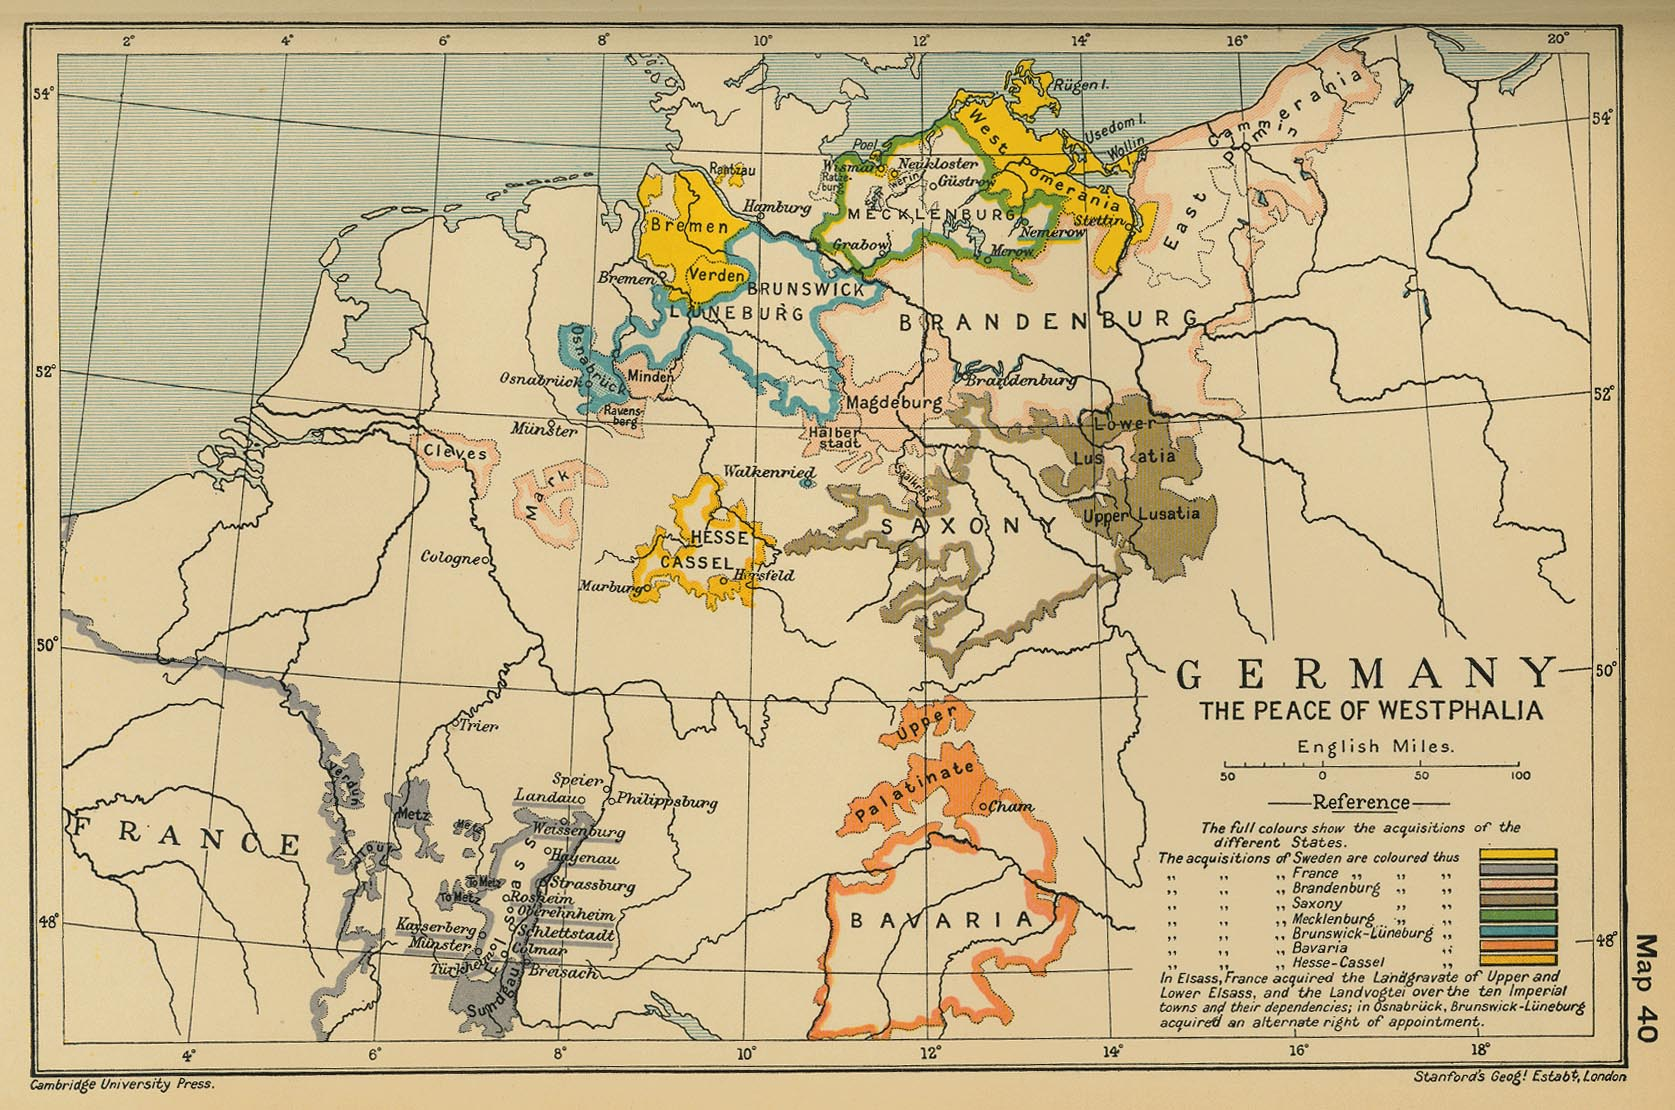 Historical Map Of Germany 1900.Historical Maps Of Germany